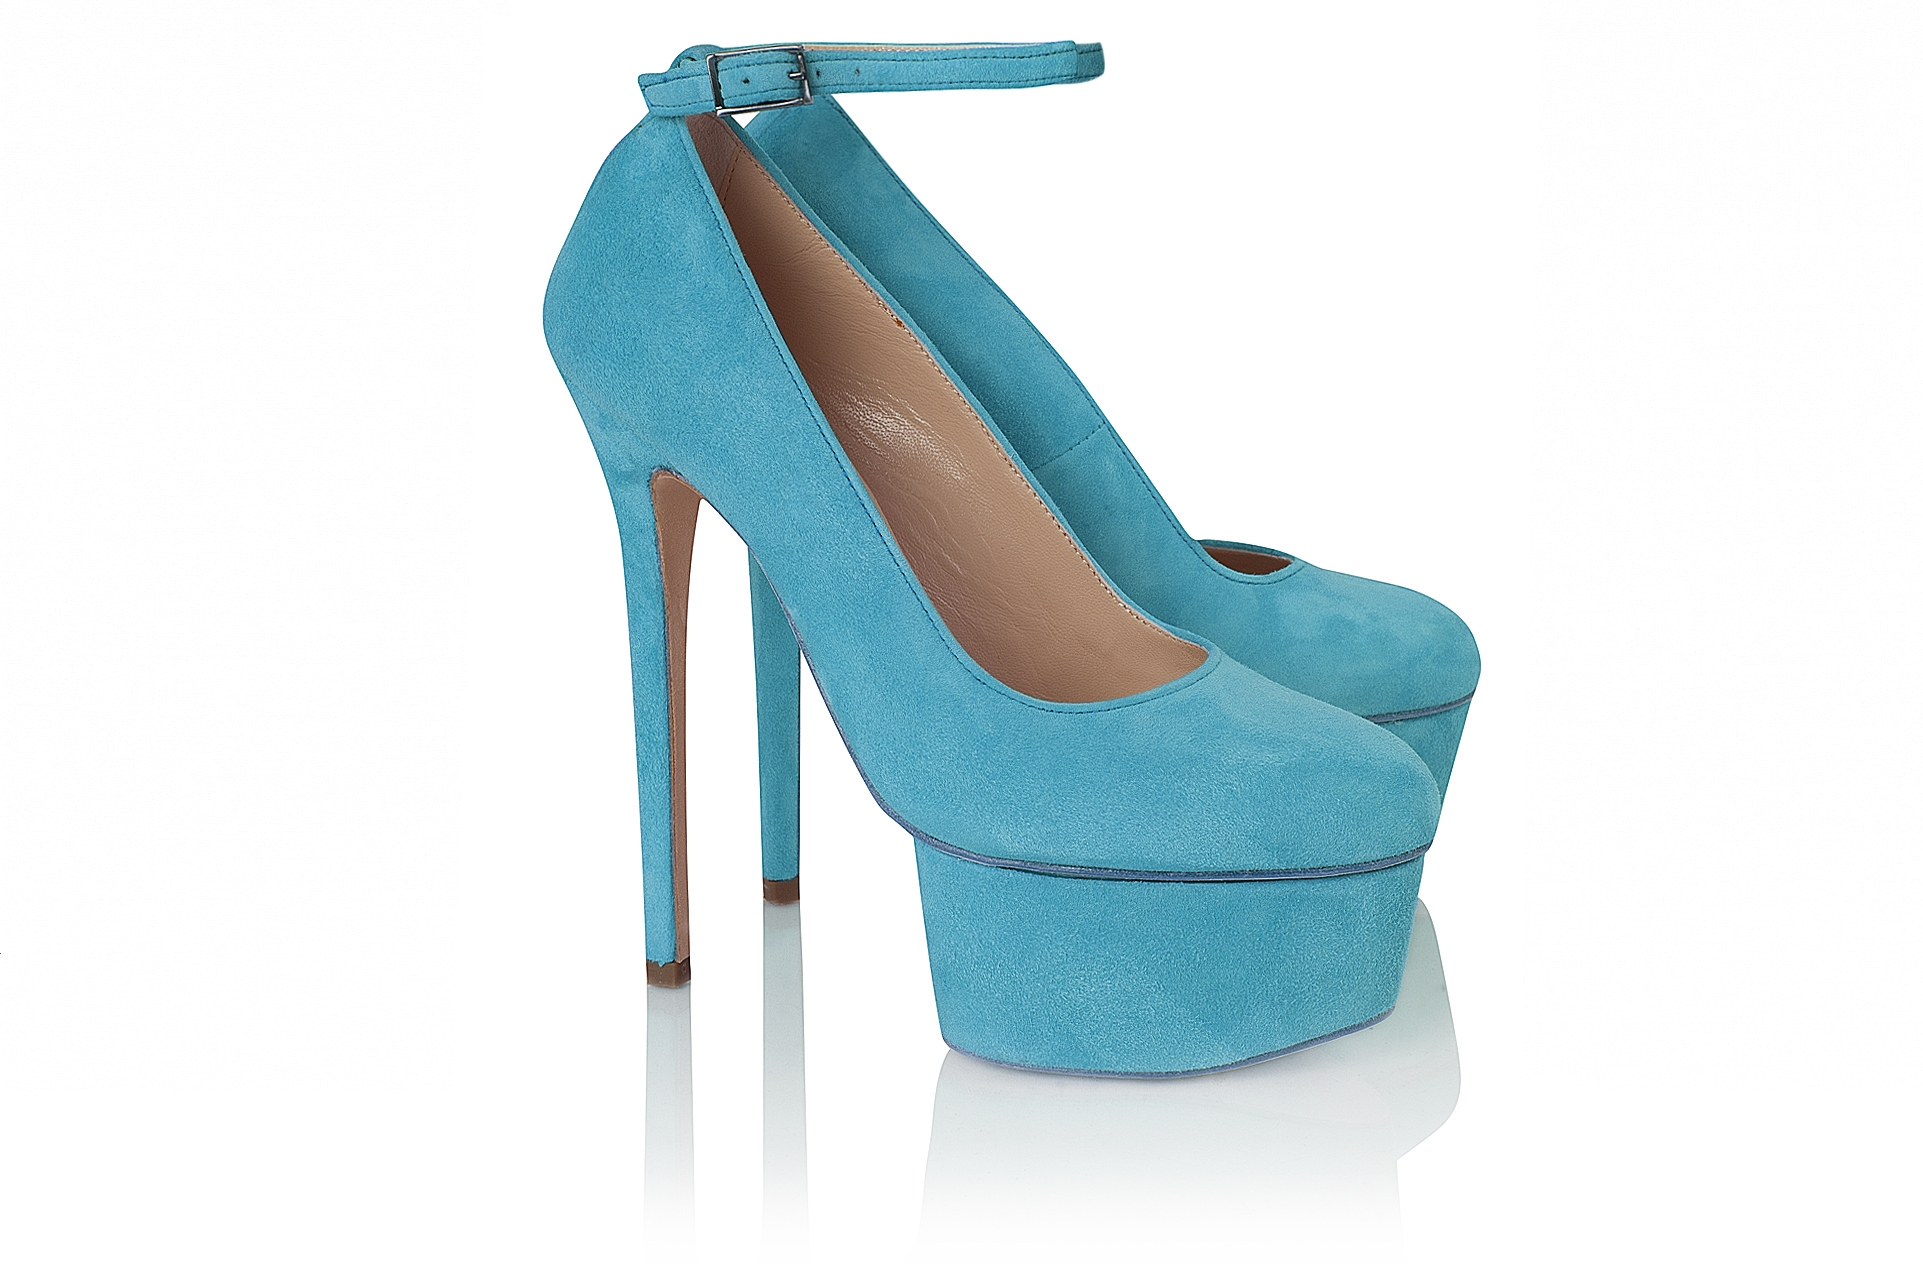 Ankle strap pump 6 inch - Shop - Olcay Gulsen